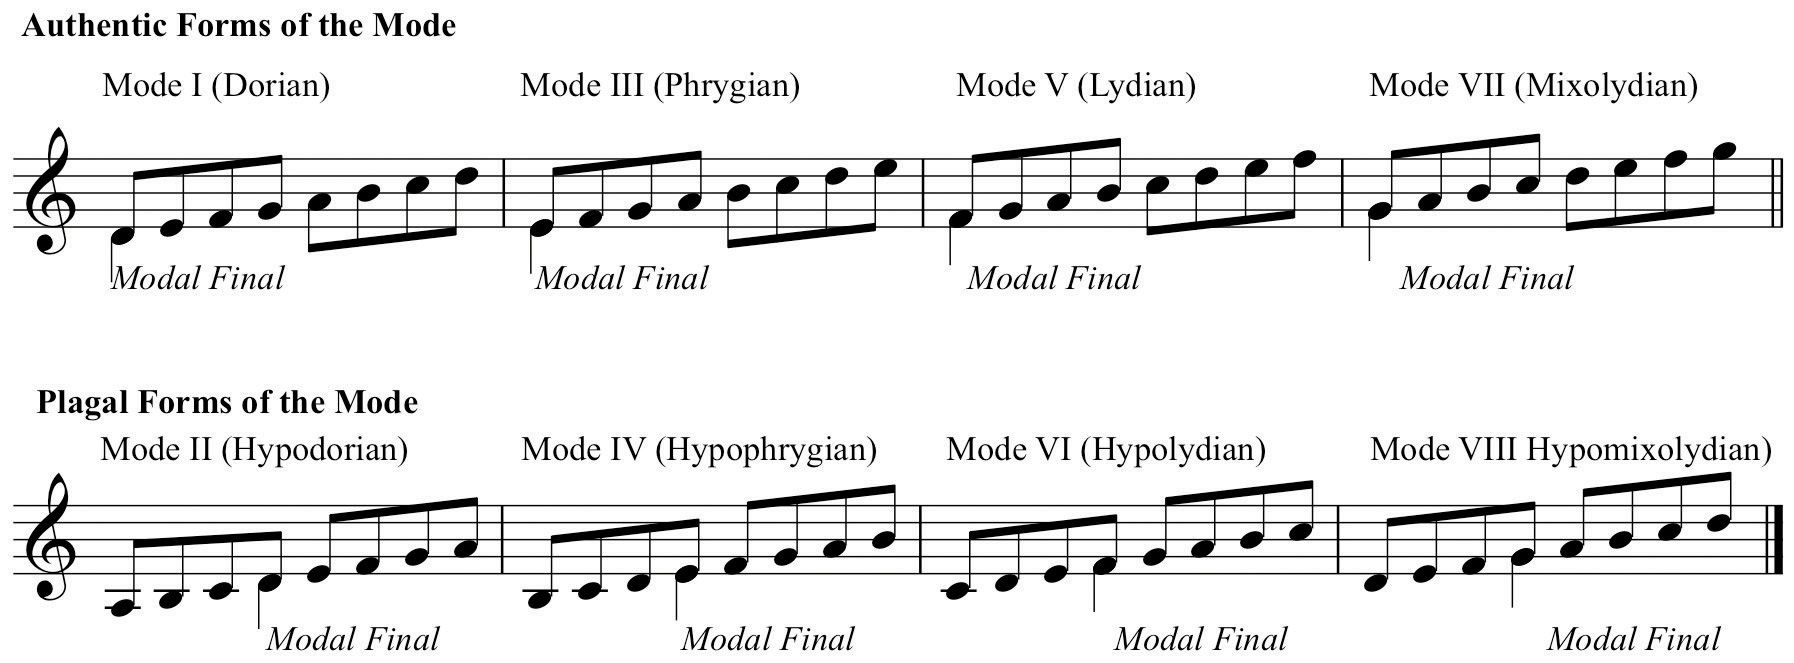 Heptatonic Scales Introduction To Modes